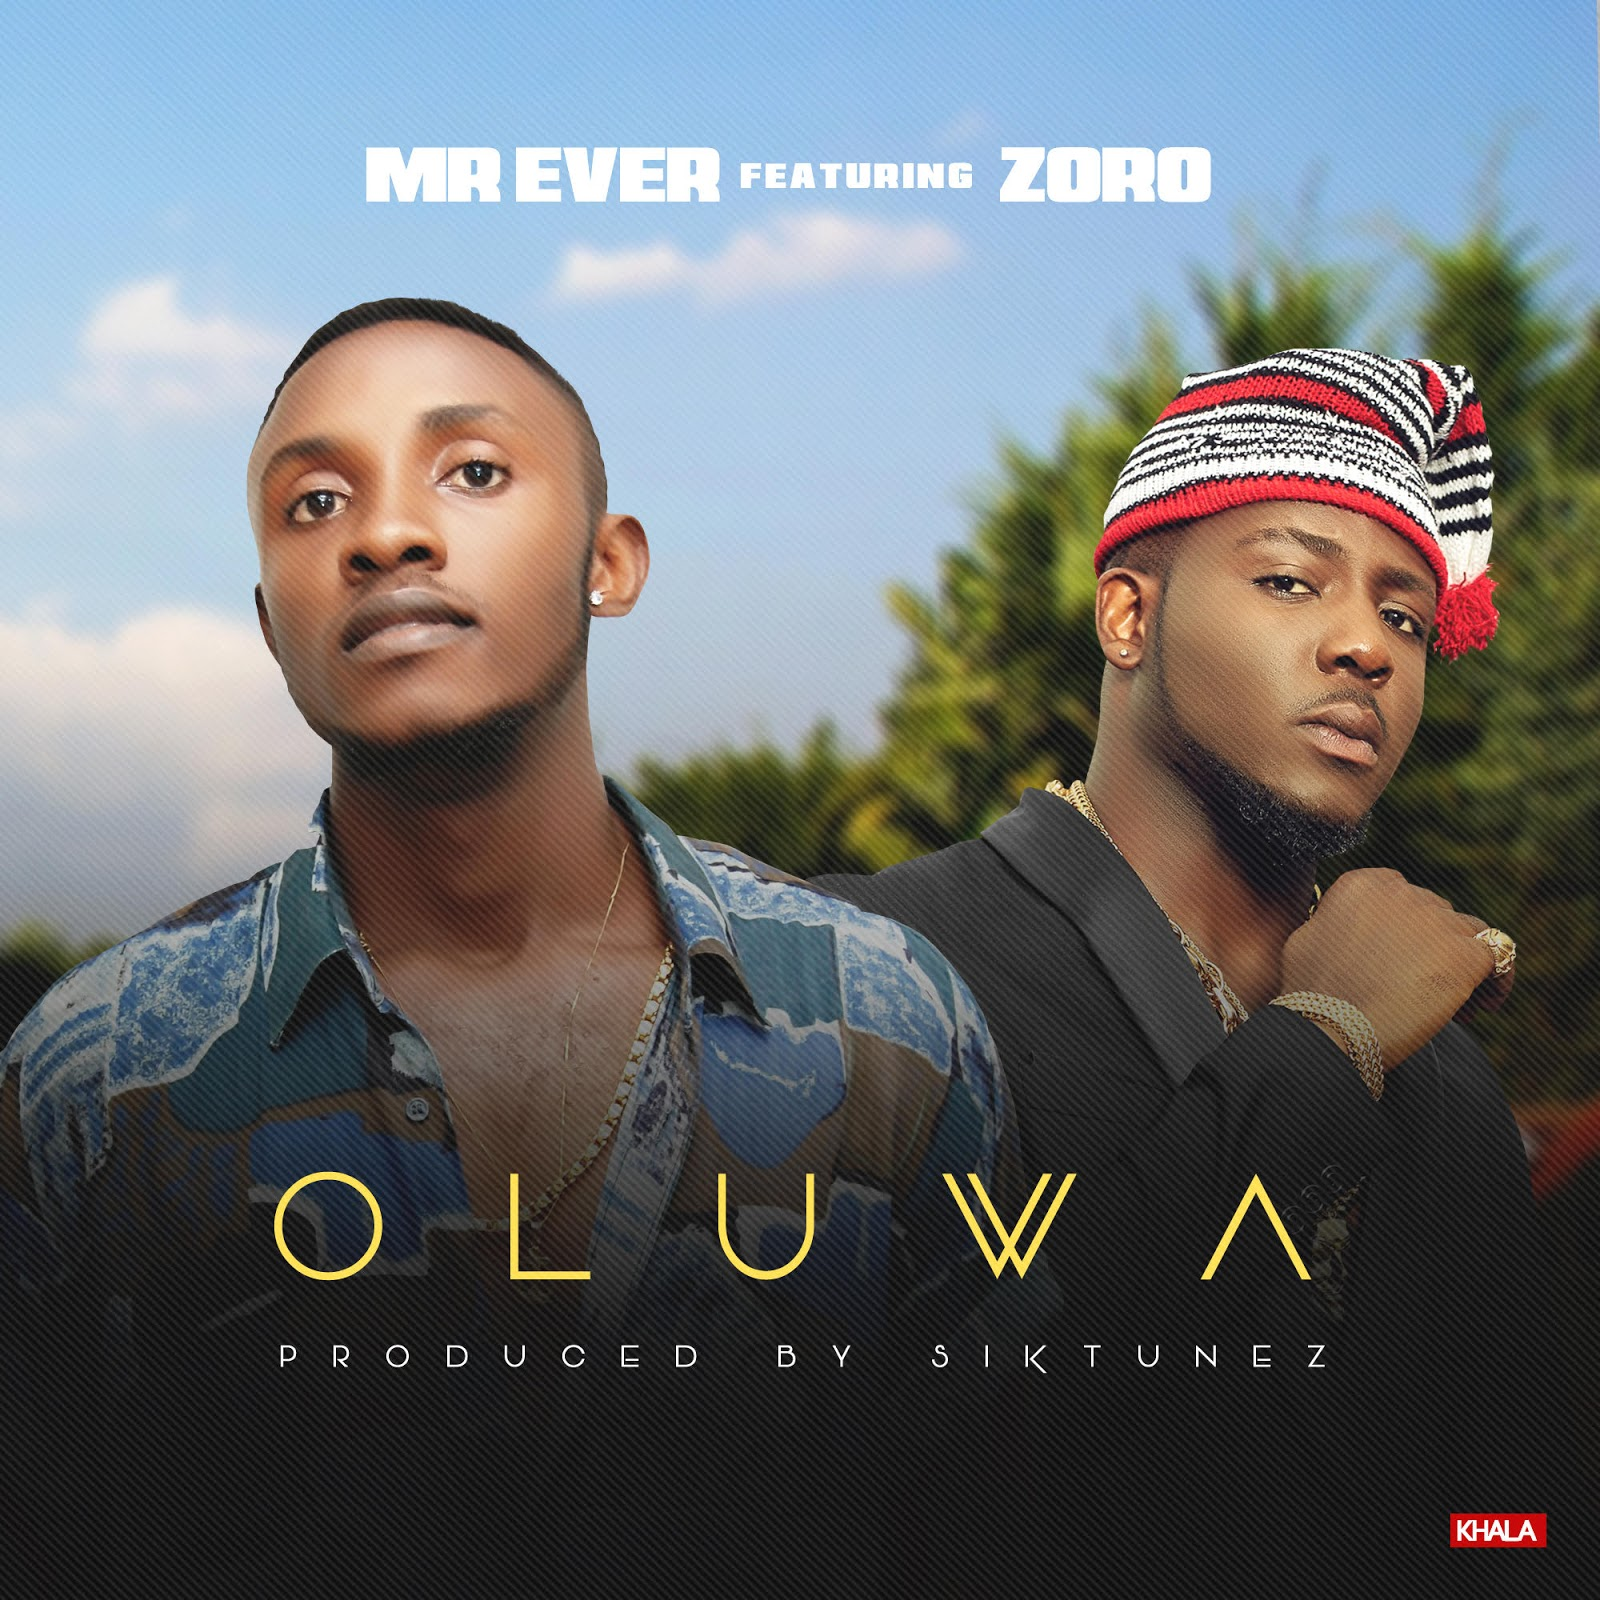 Mr Ever features Zoro in new song 'Oluwa' - NOLLY MOVIES PLANET